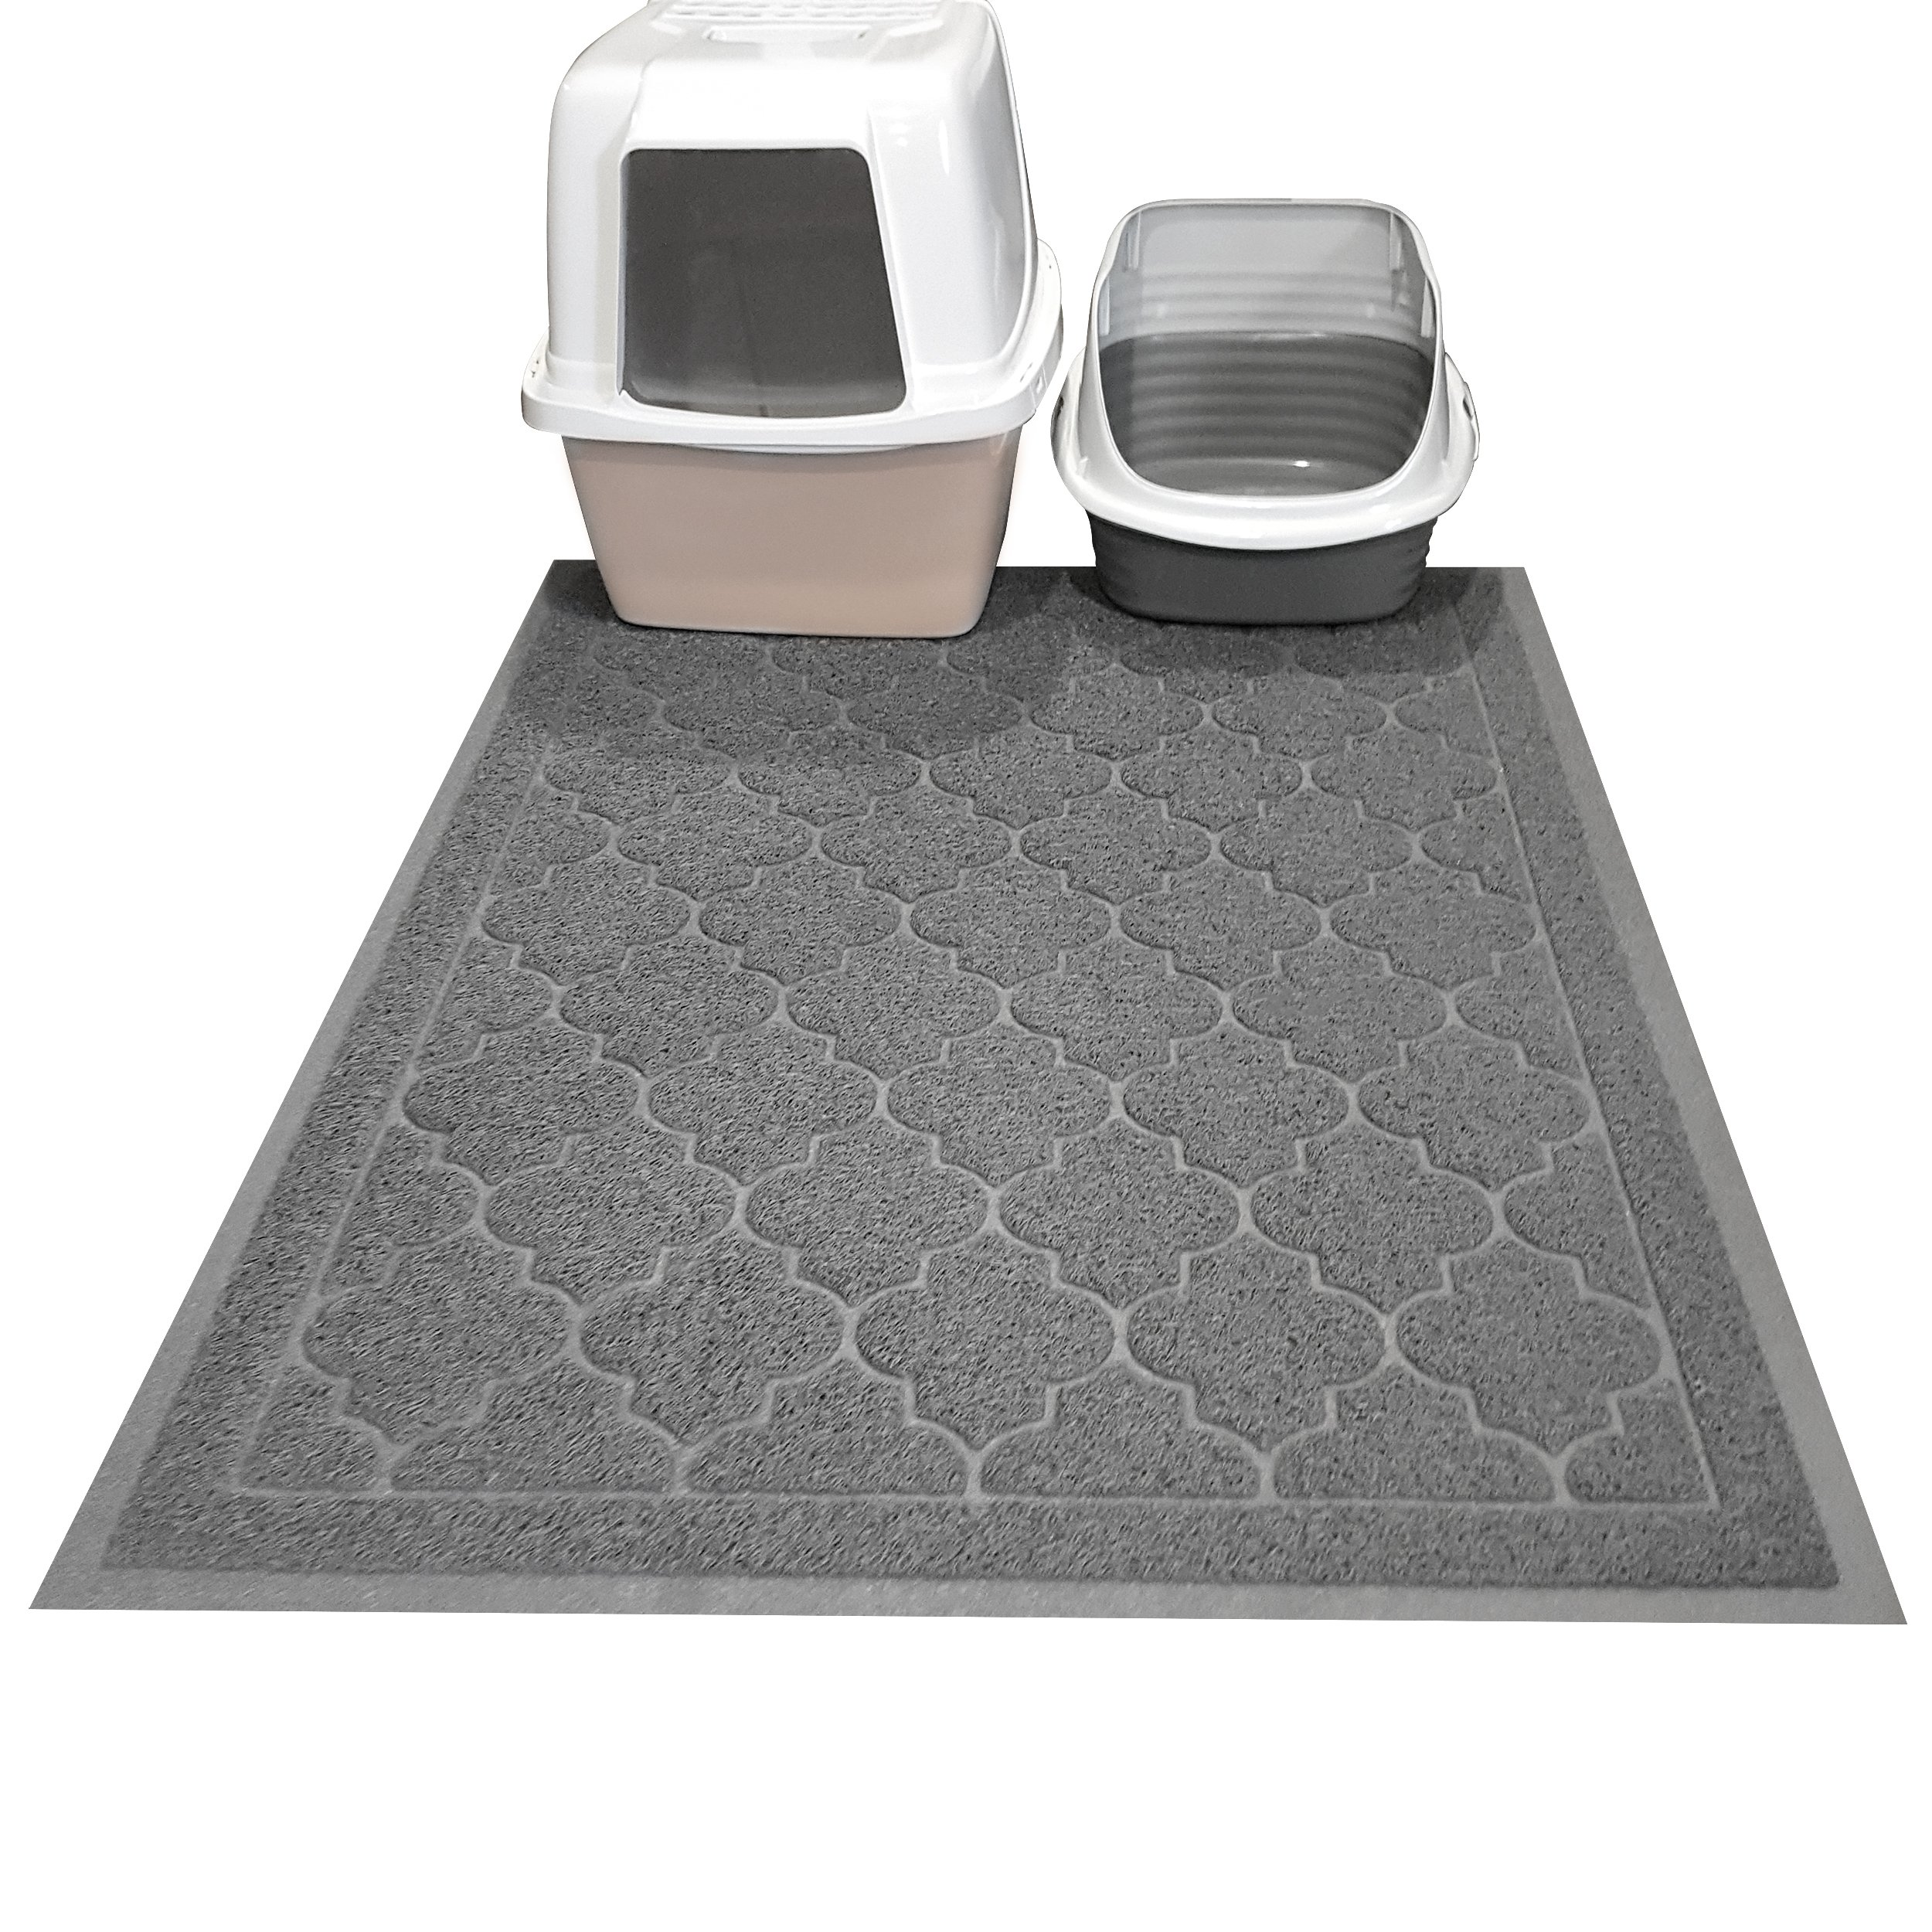 itm mat litter preve paws cat kitty free stylish size scatter jumbo bpa design mats rug and to x prevents color soft fab